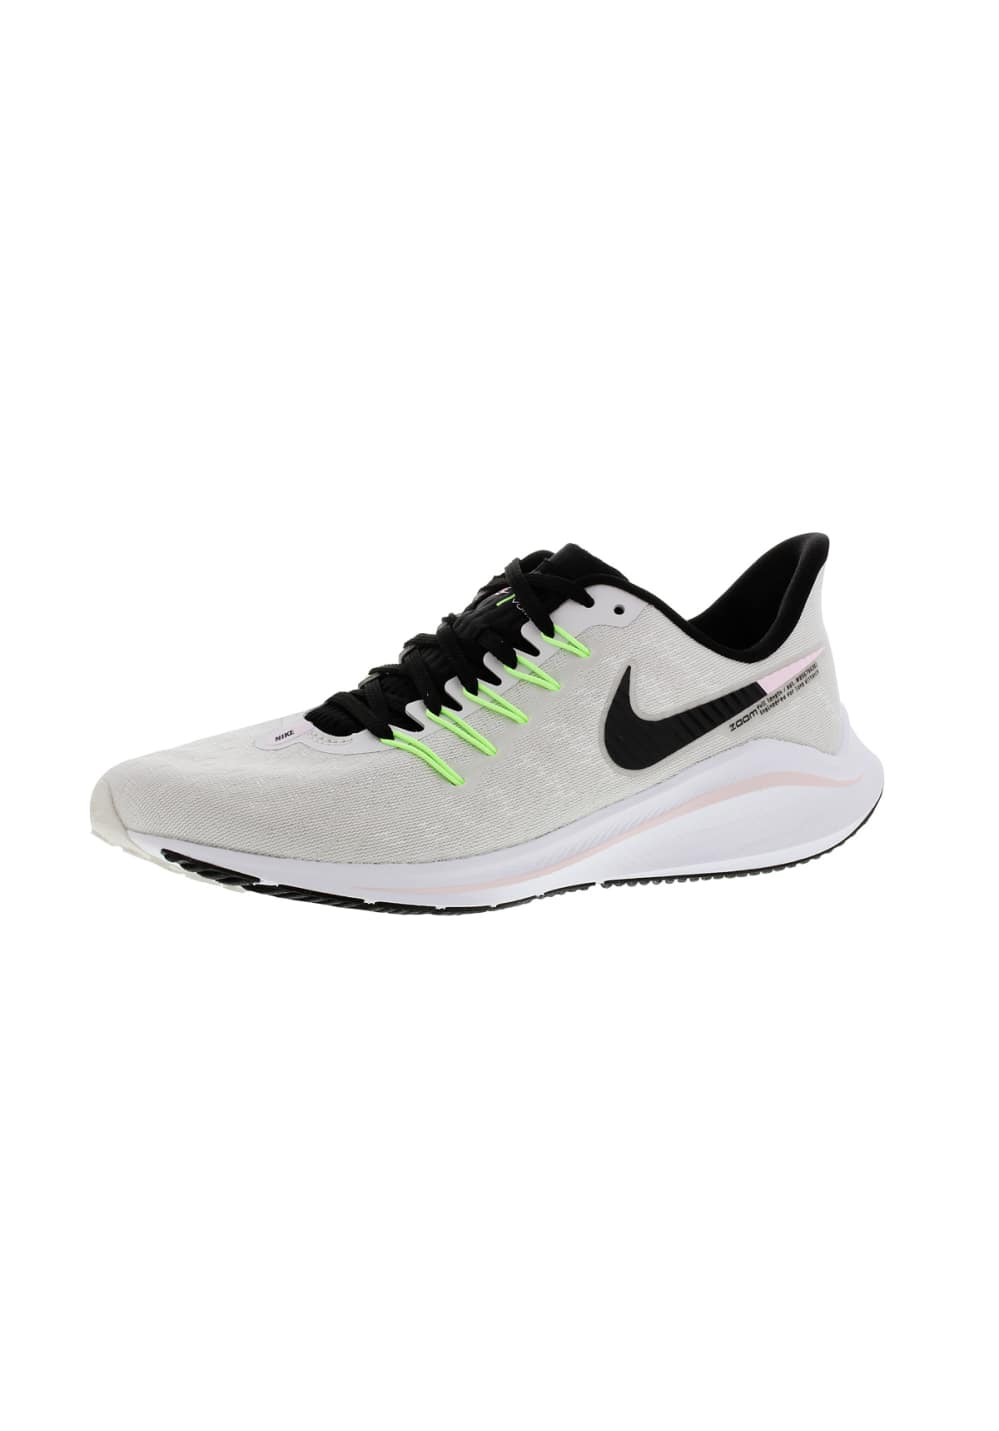 afc3ce98b89ec6 Next. -60%. Nike. Air Zoom Vomero 15 - Running shoes for Women